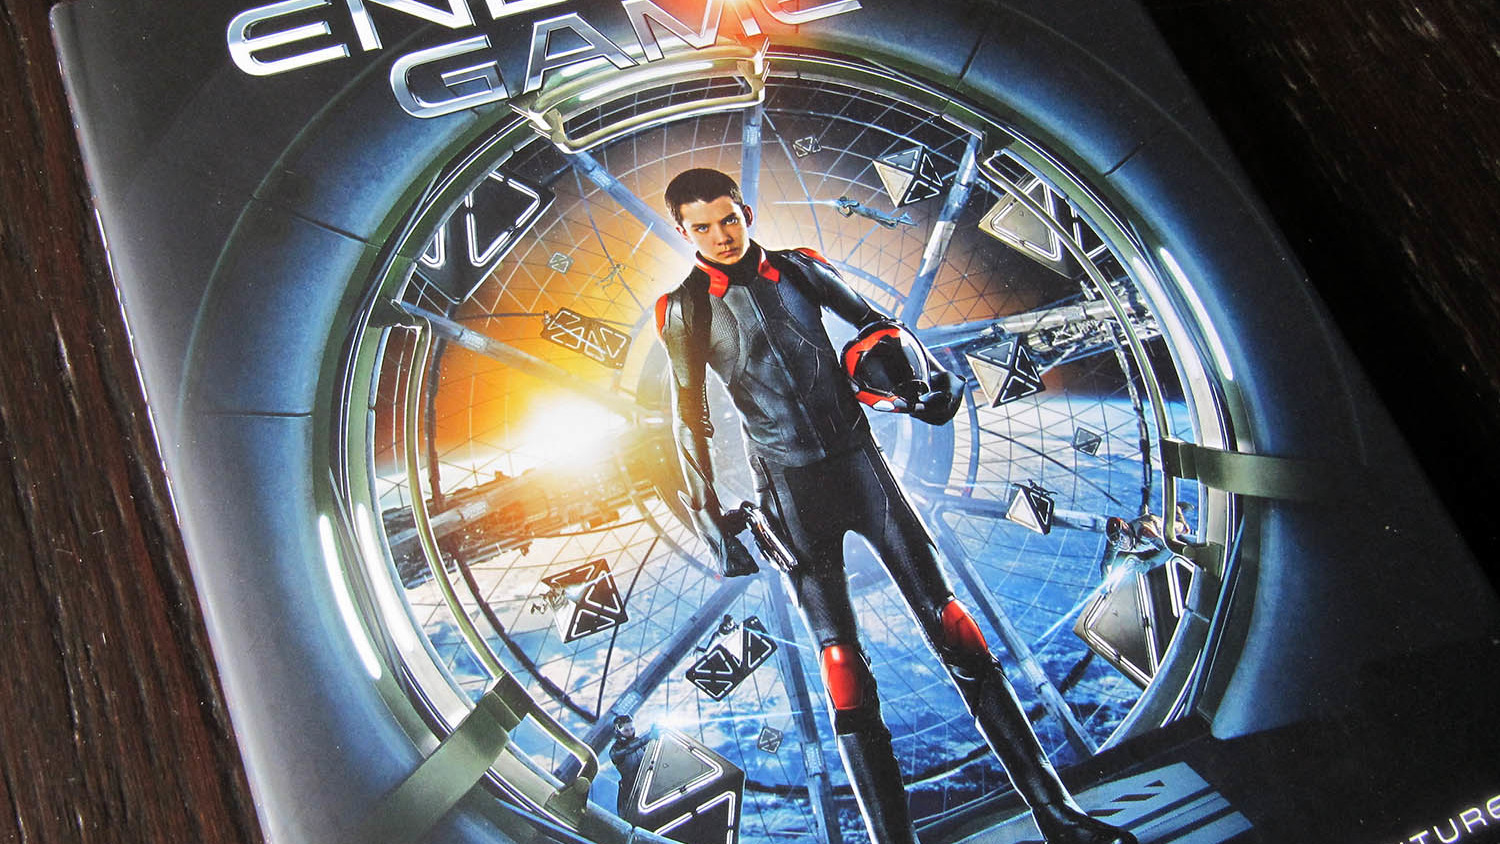 Fraai boek - Ender's Game: Inside the World of an Epic Adventure